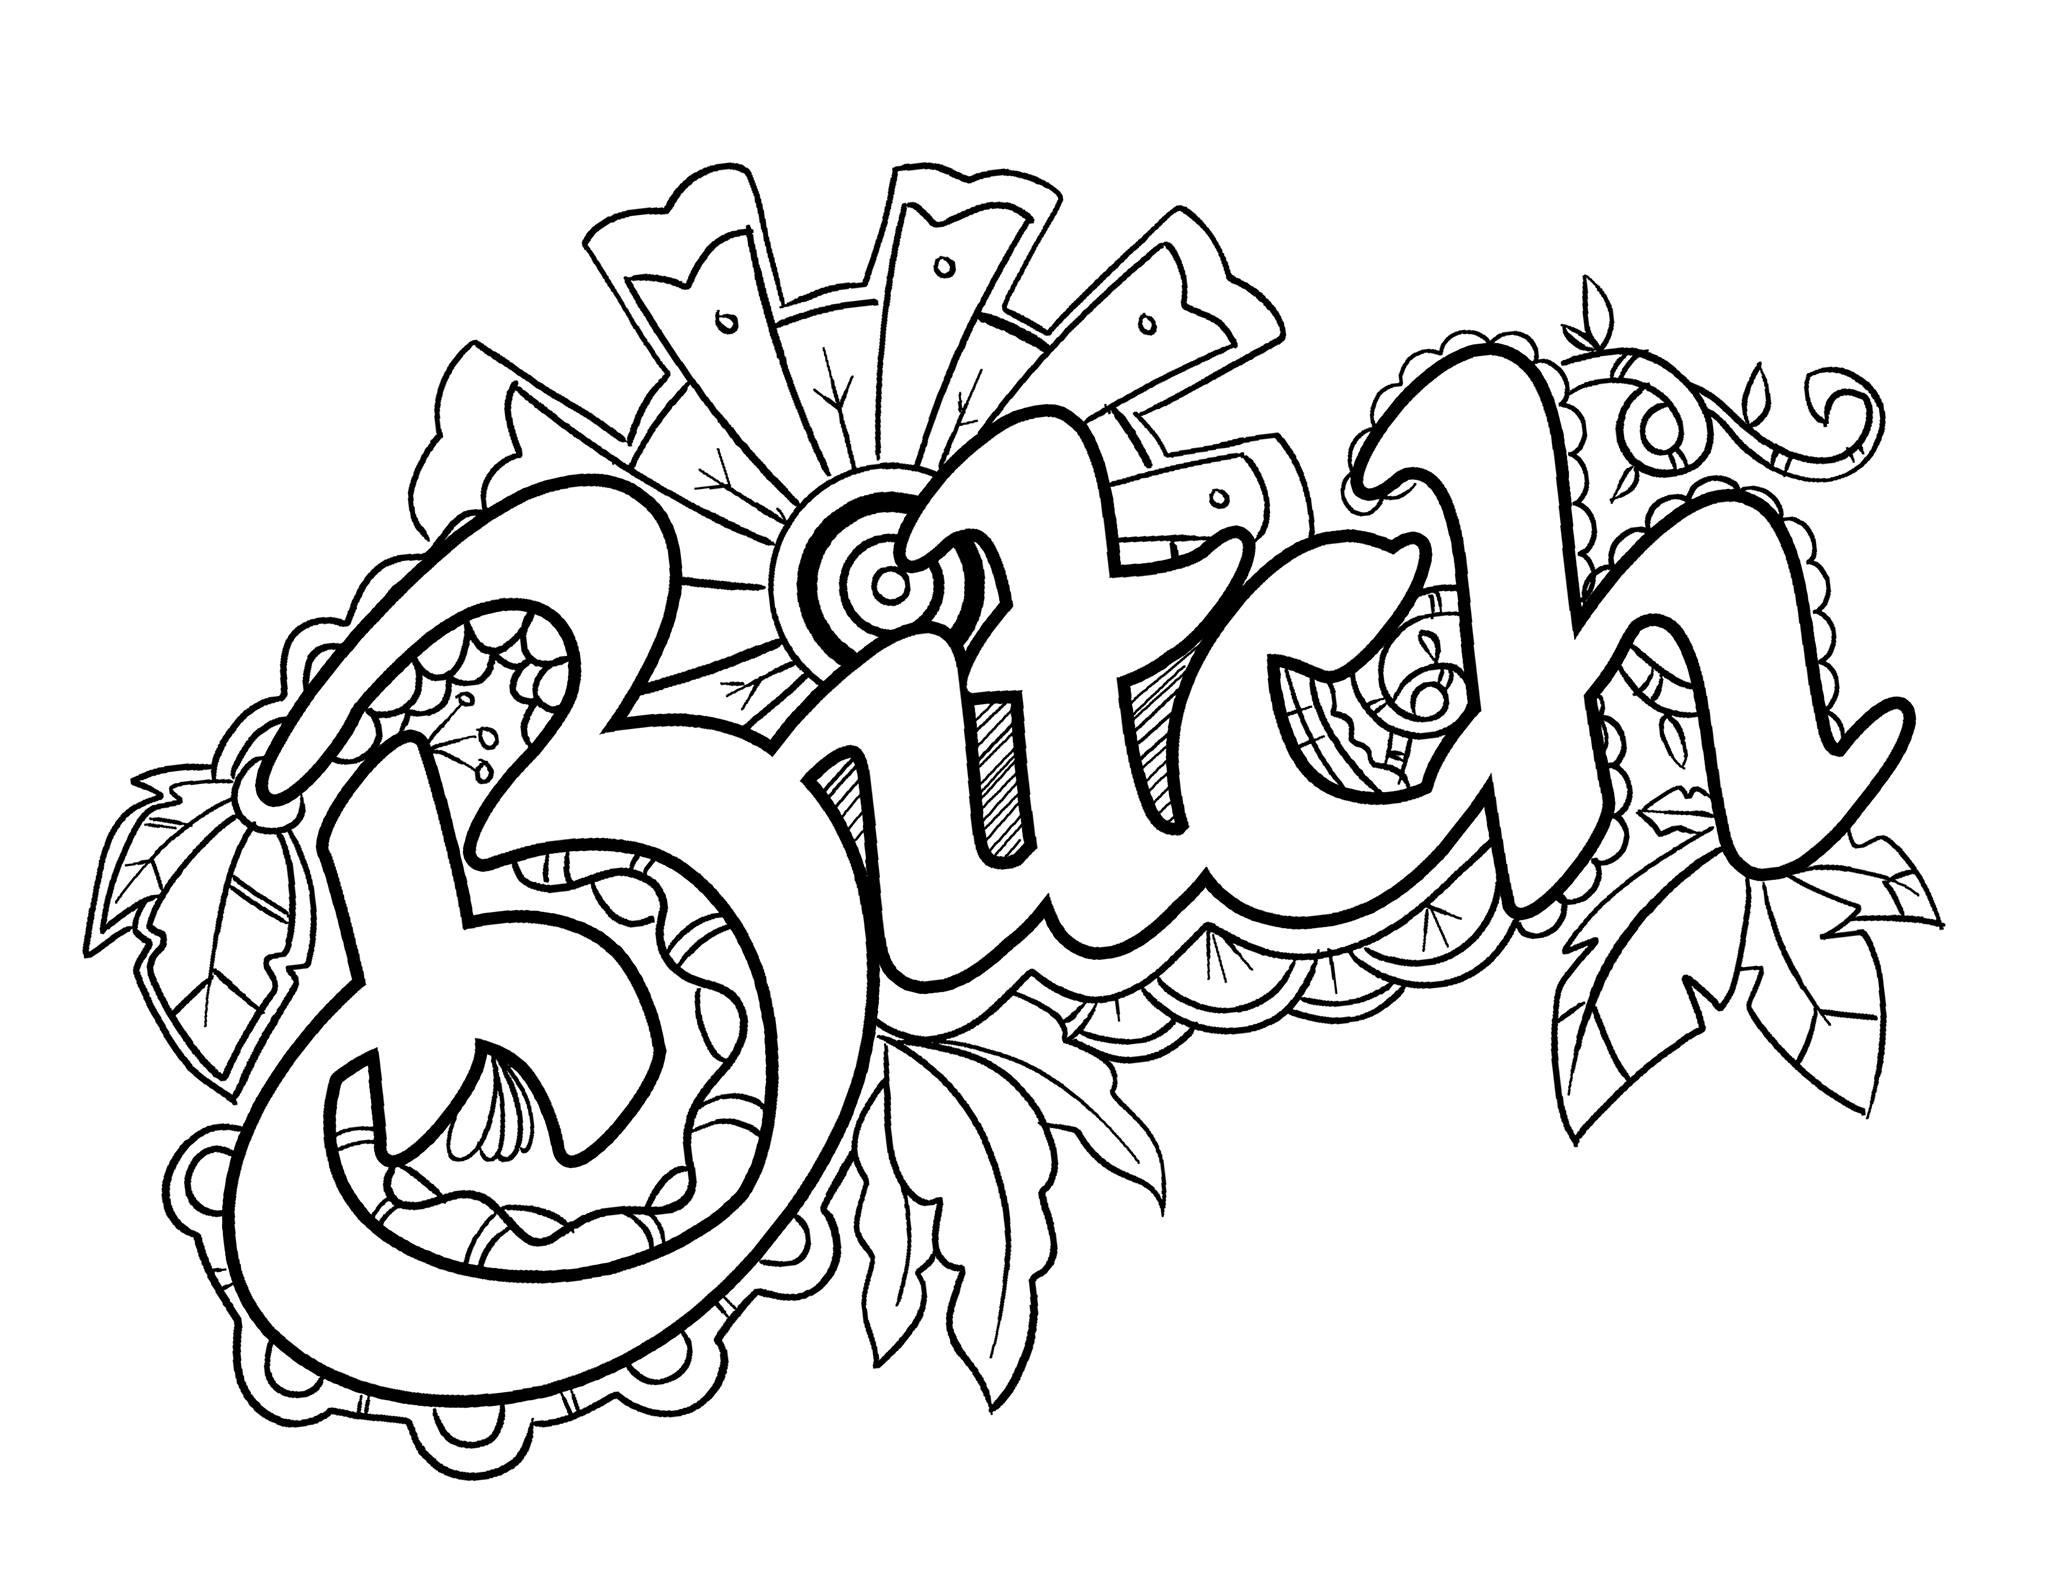 Swear Word Coloring Pages - Best Coloring Pages For Kids - Free Printable Swear Word Coloring Pages